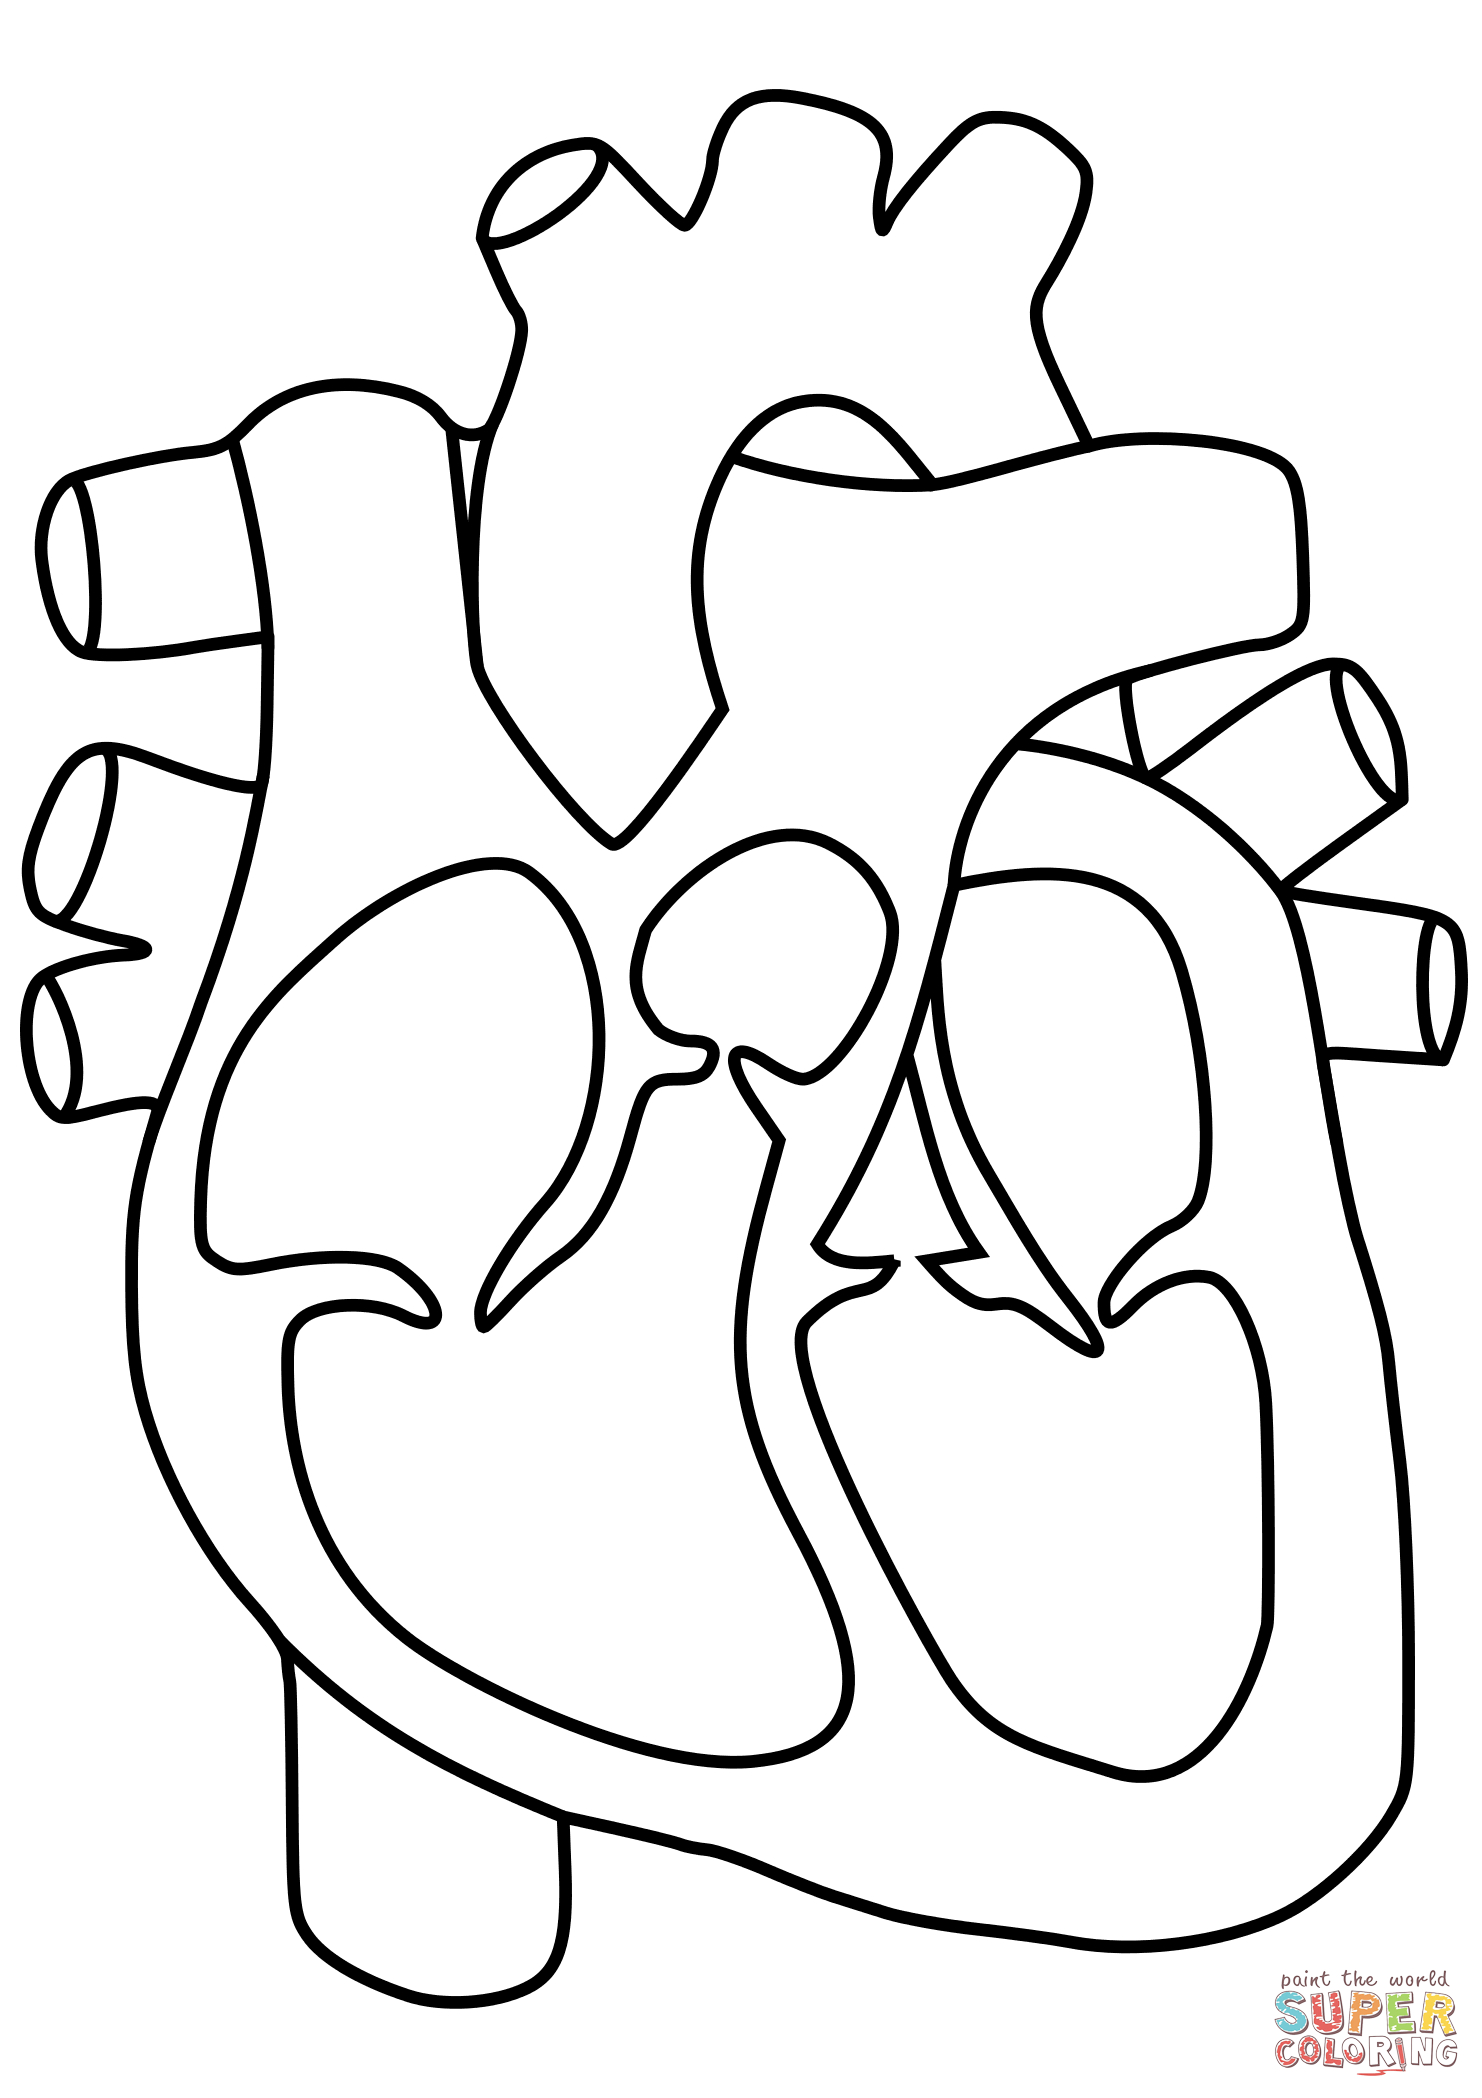 The Heart Coloring Pages At Getcolorings